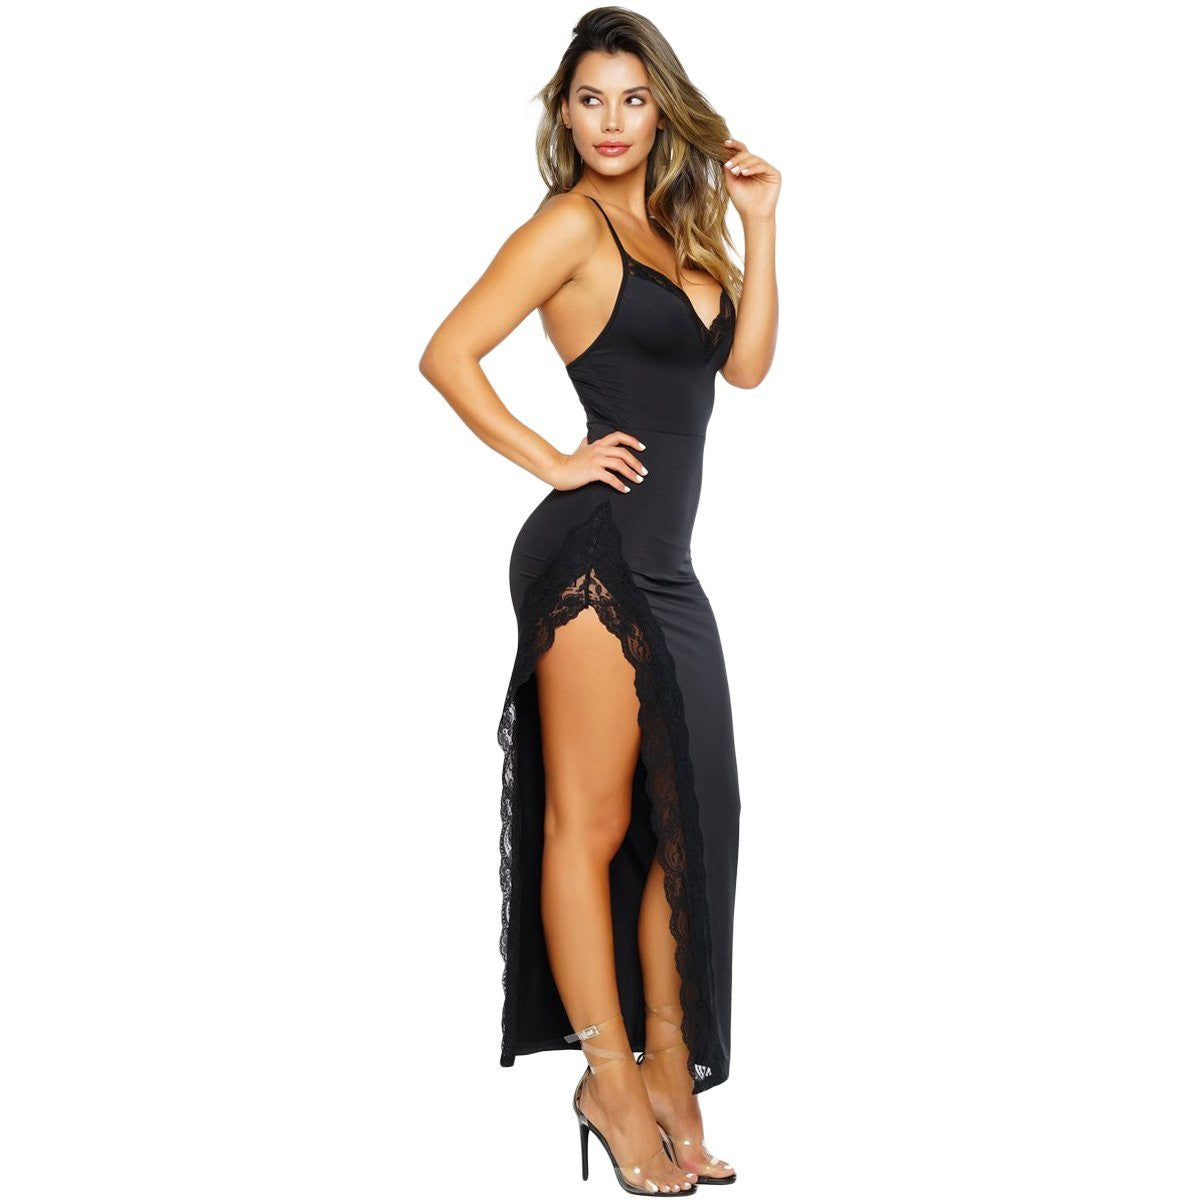 KELLIPS Black Sleeveless Party Maxi Dress - KELLIPS